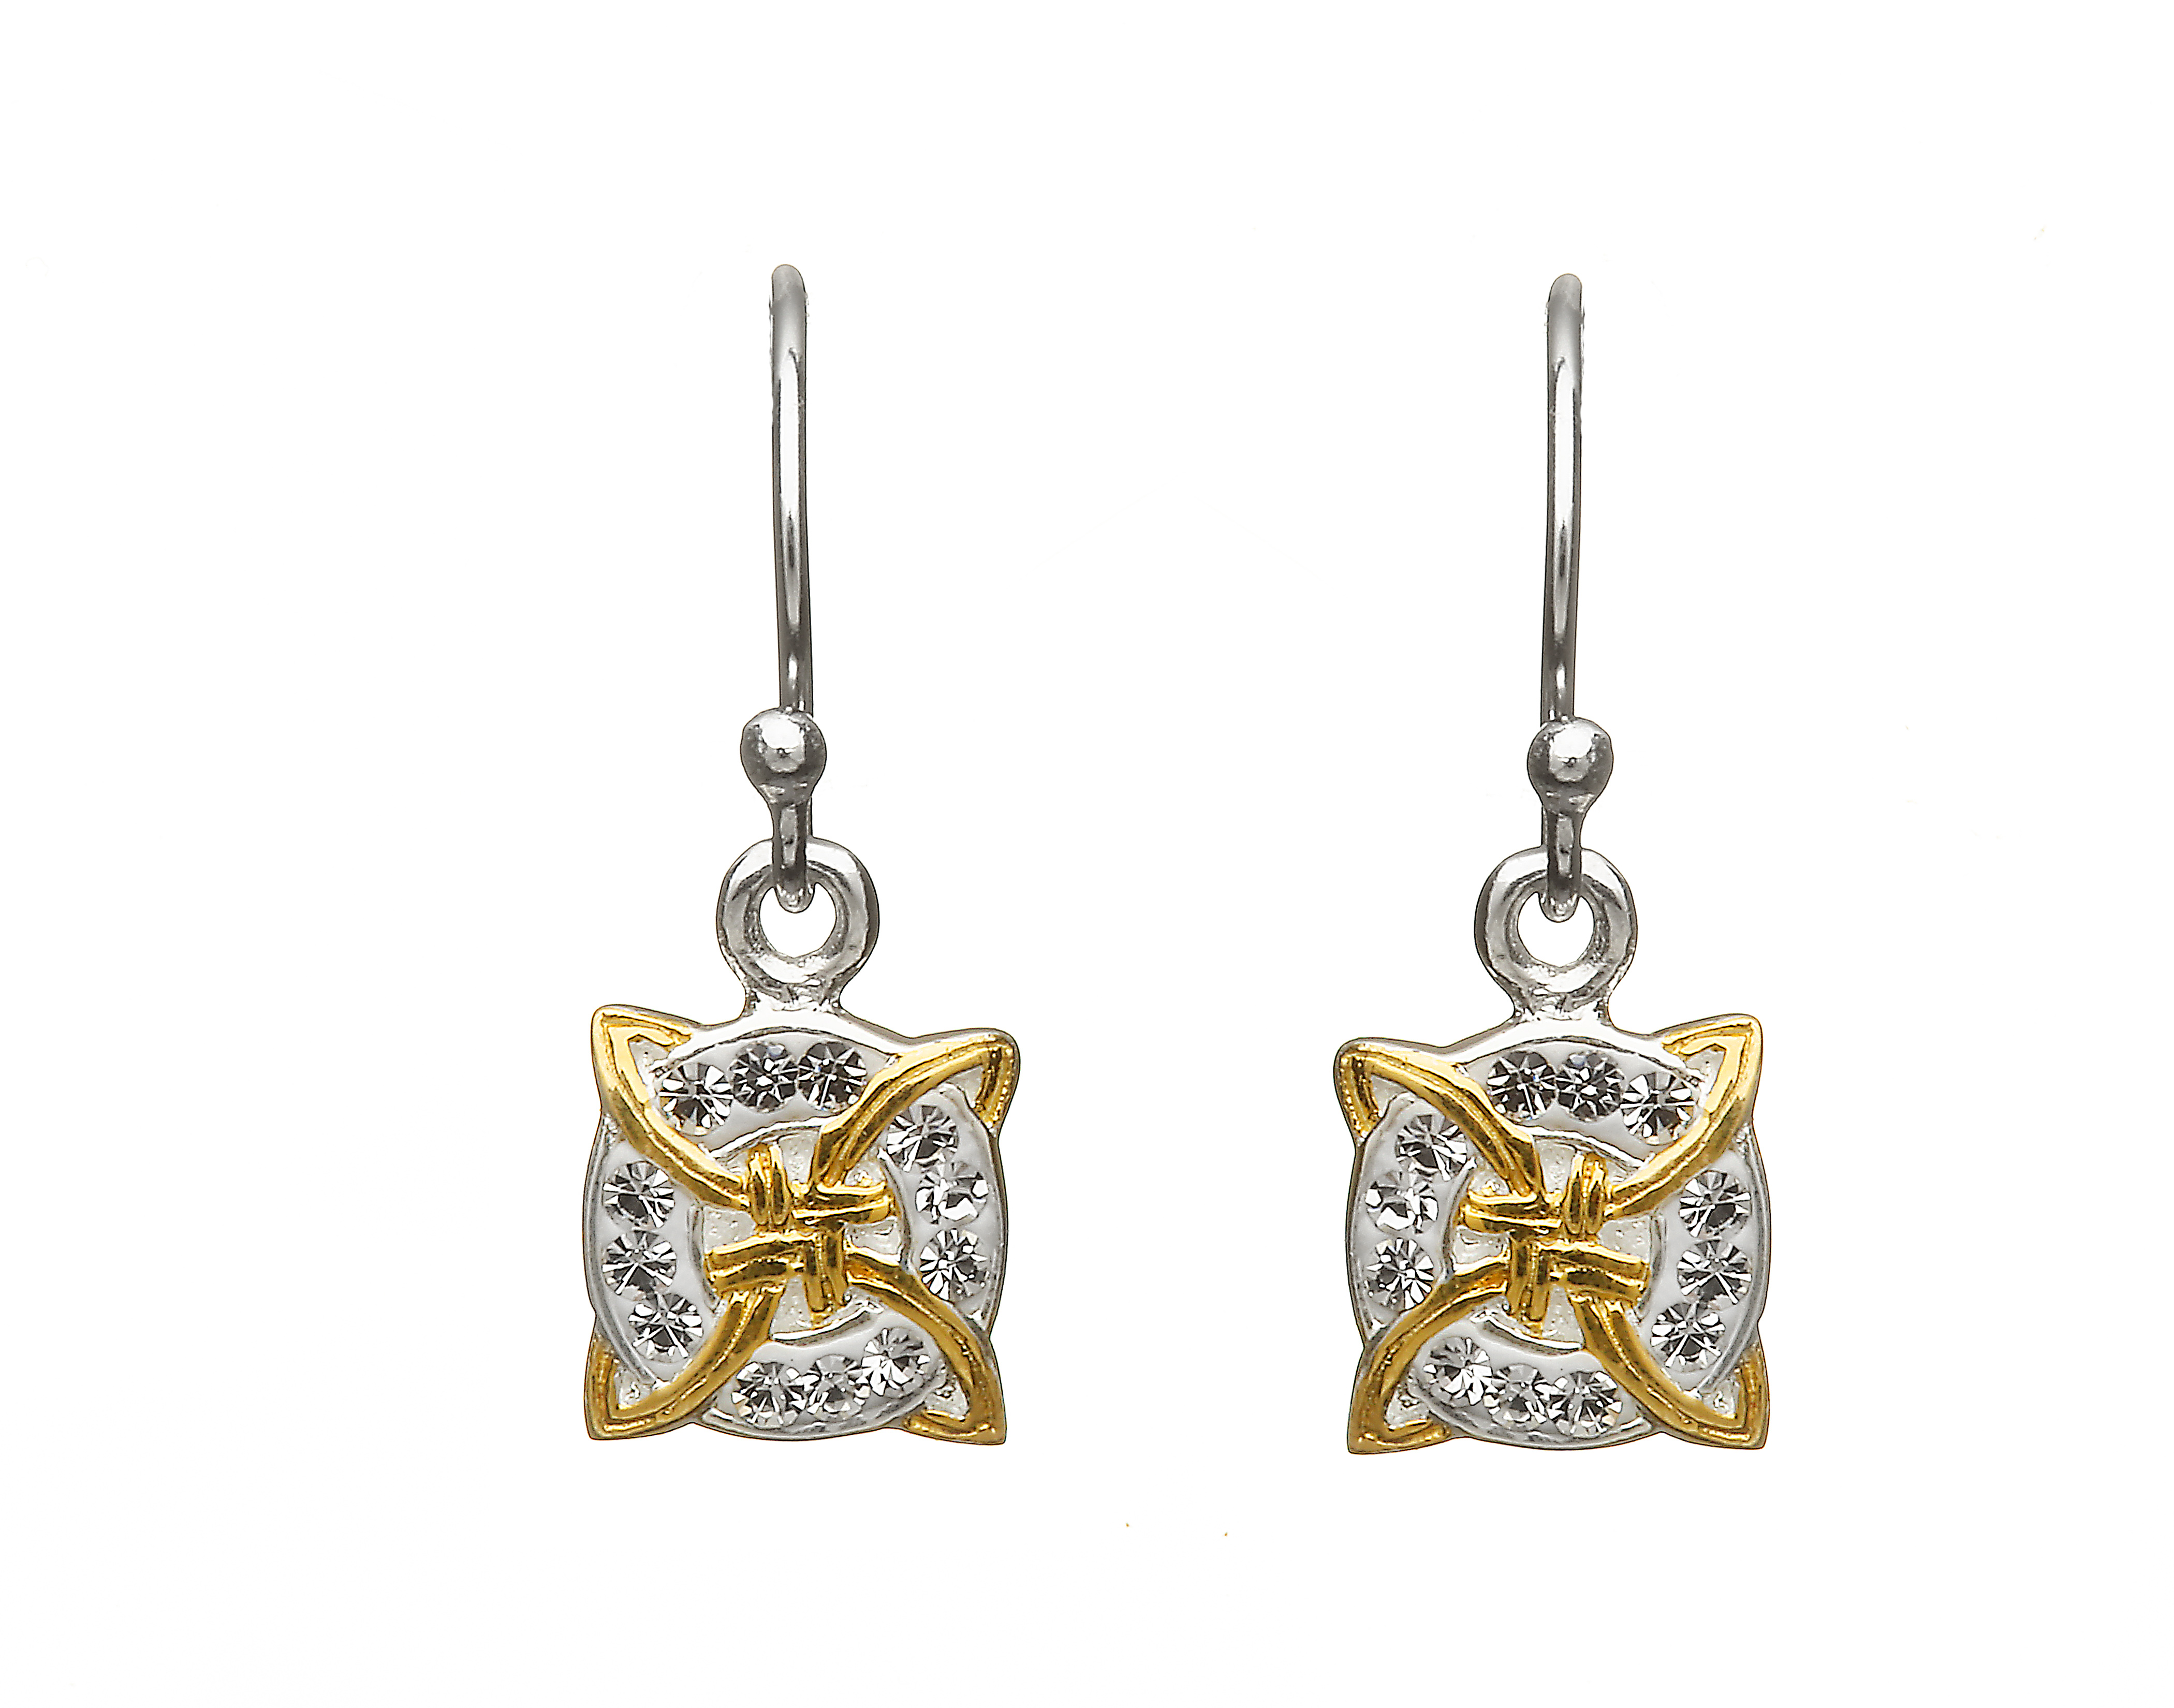 Sterling Silver Square Hook Fitting Earrings With Yellow